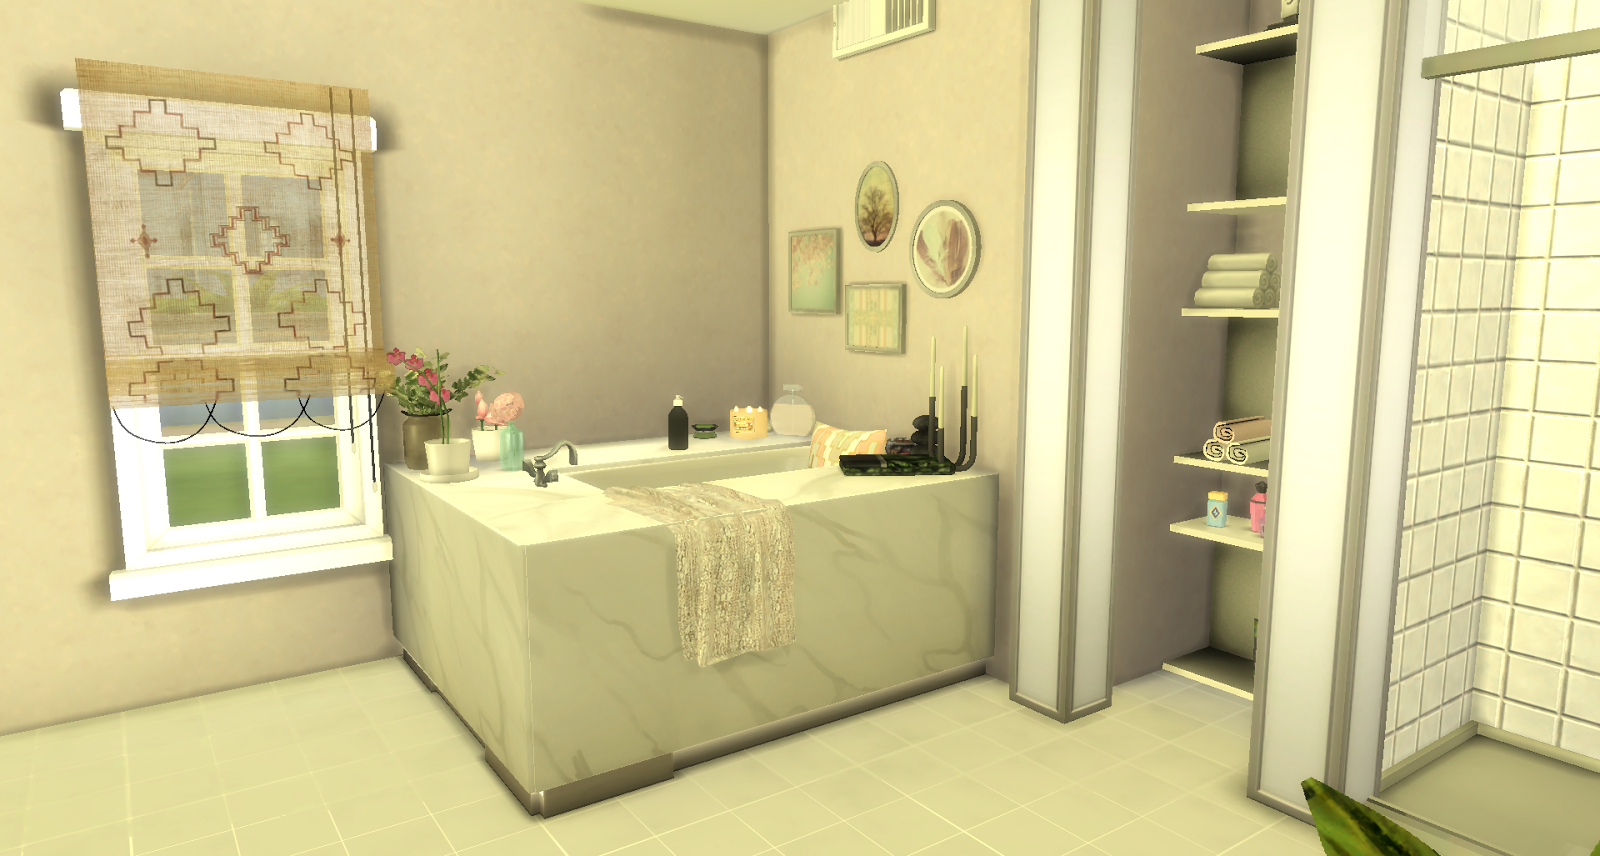 Benson the sims 4 download the sims 4 building and for Bathroom ideas sims 3